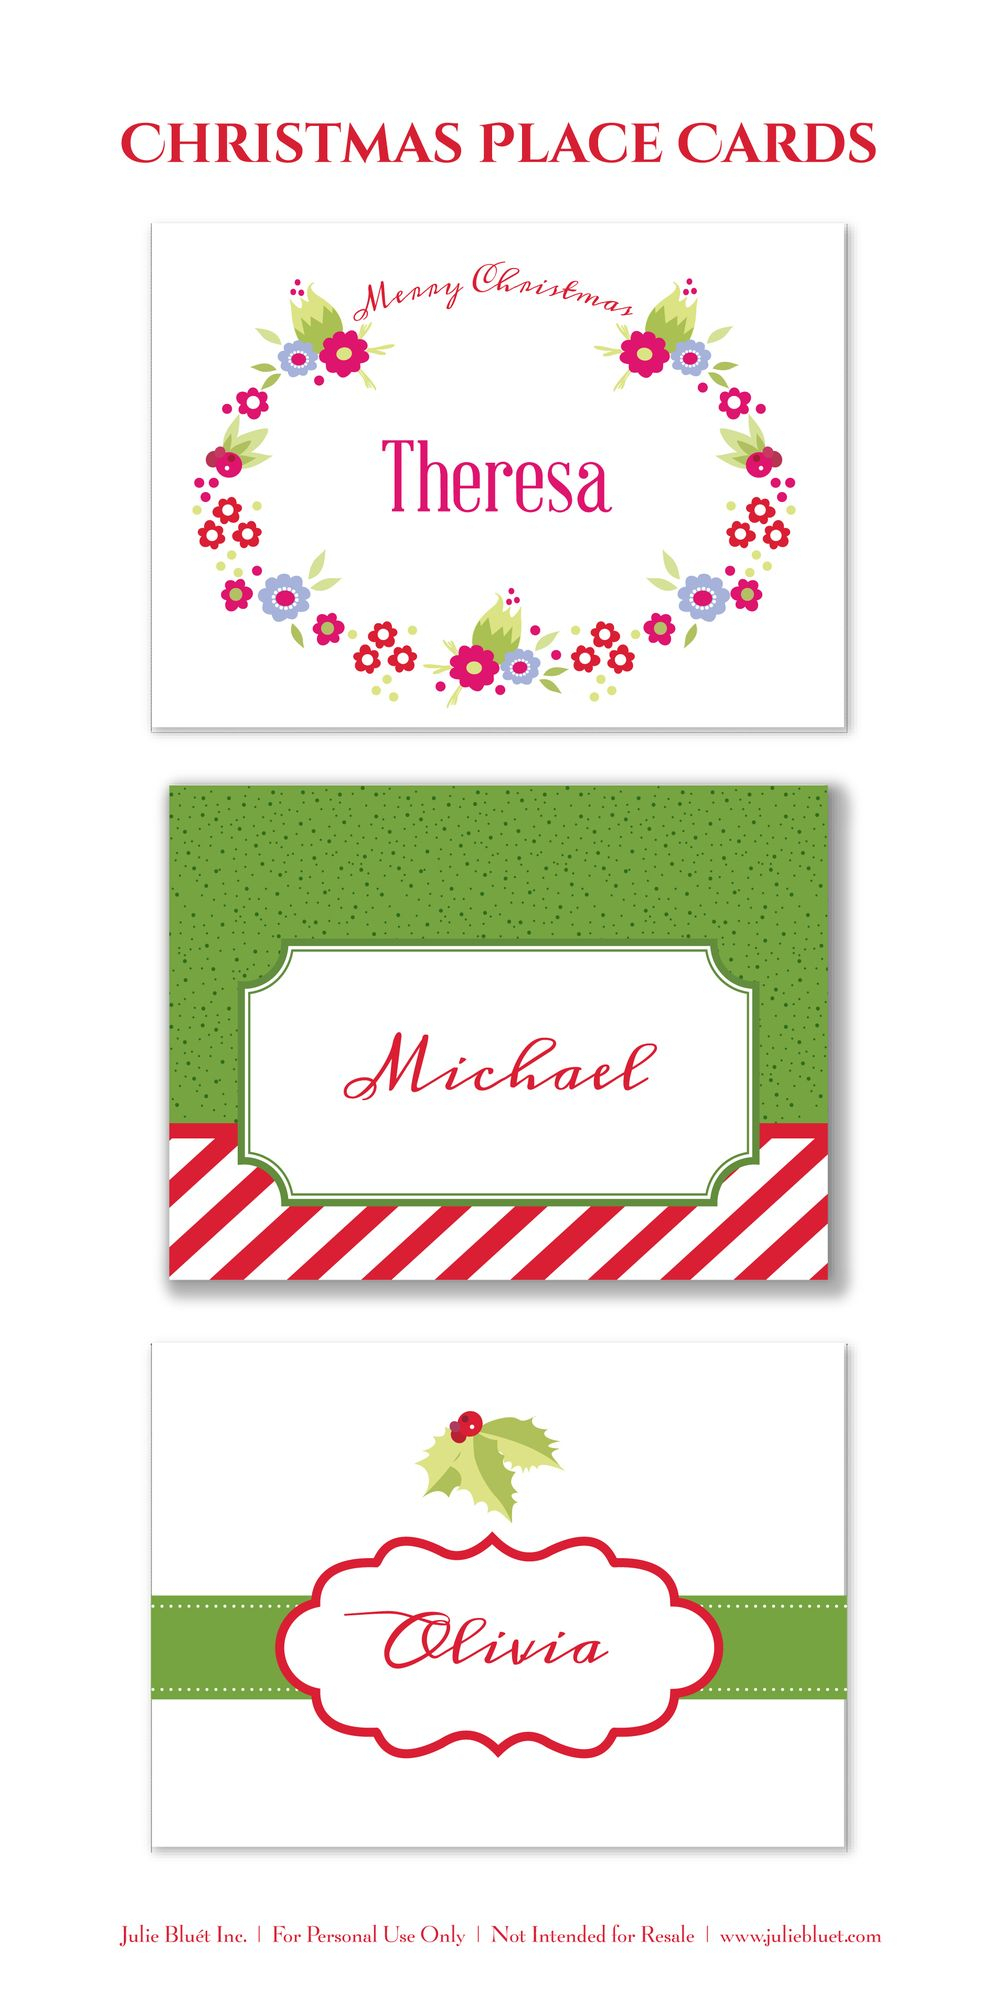 Here Are Three Free Printable Christmas Place Cards For